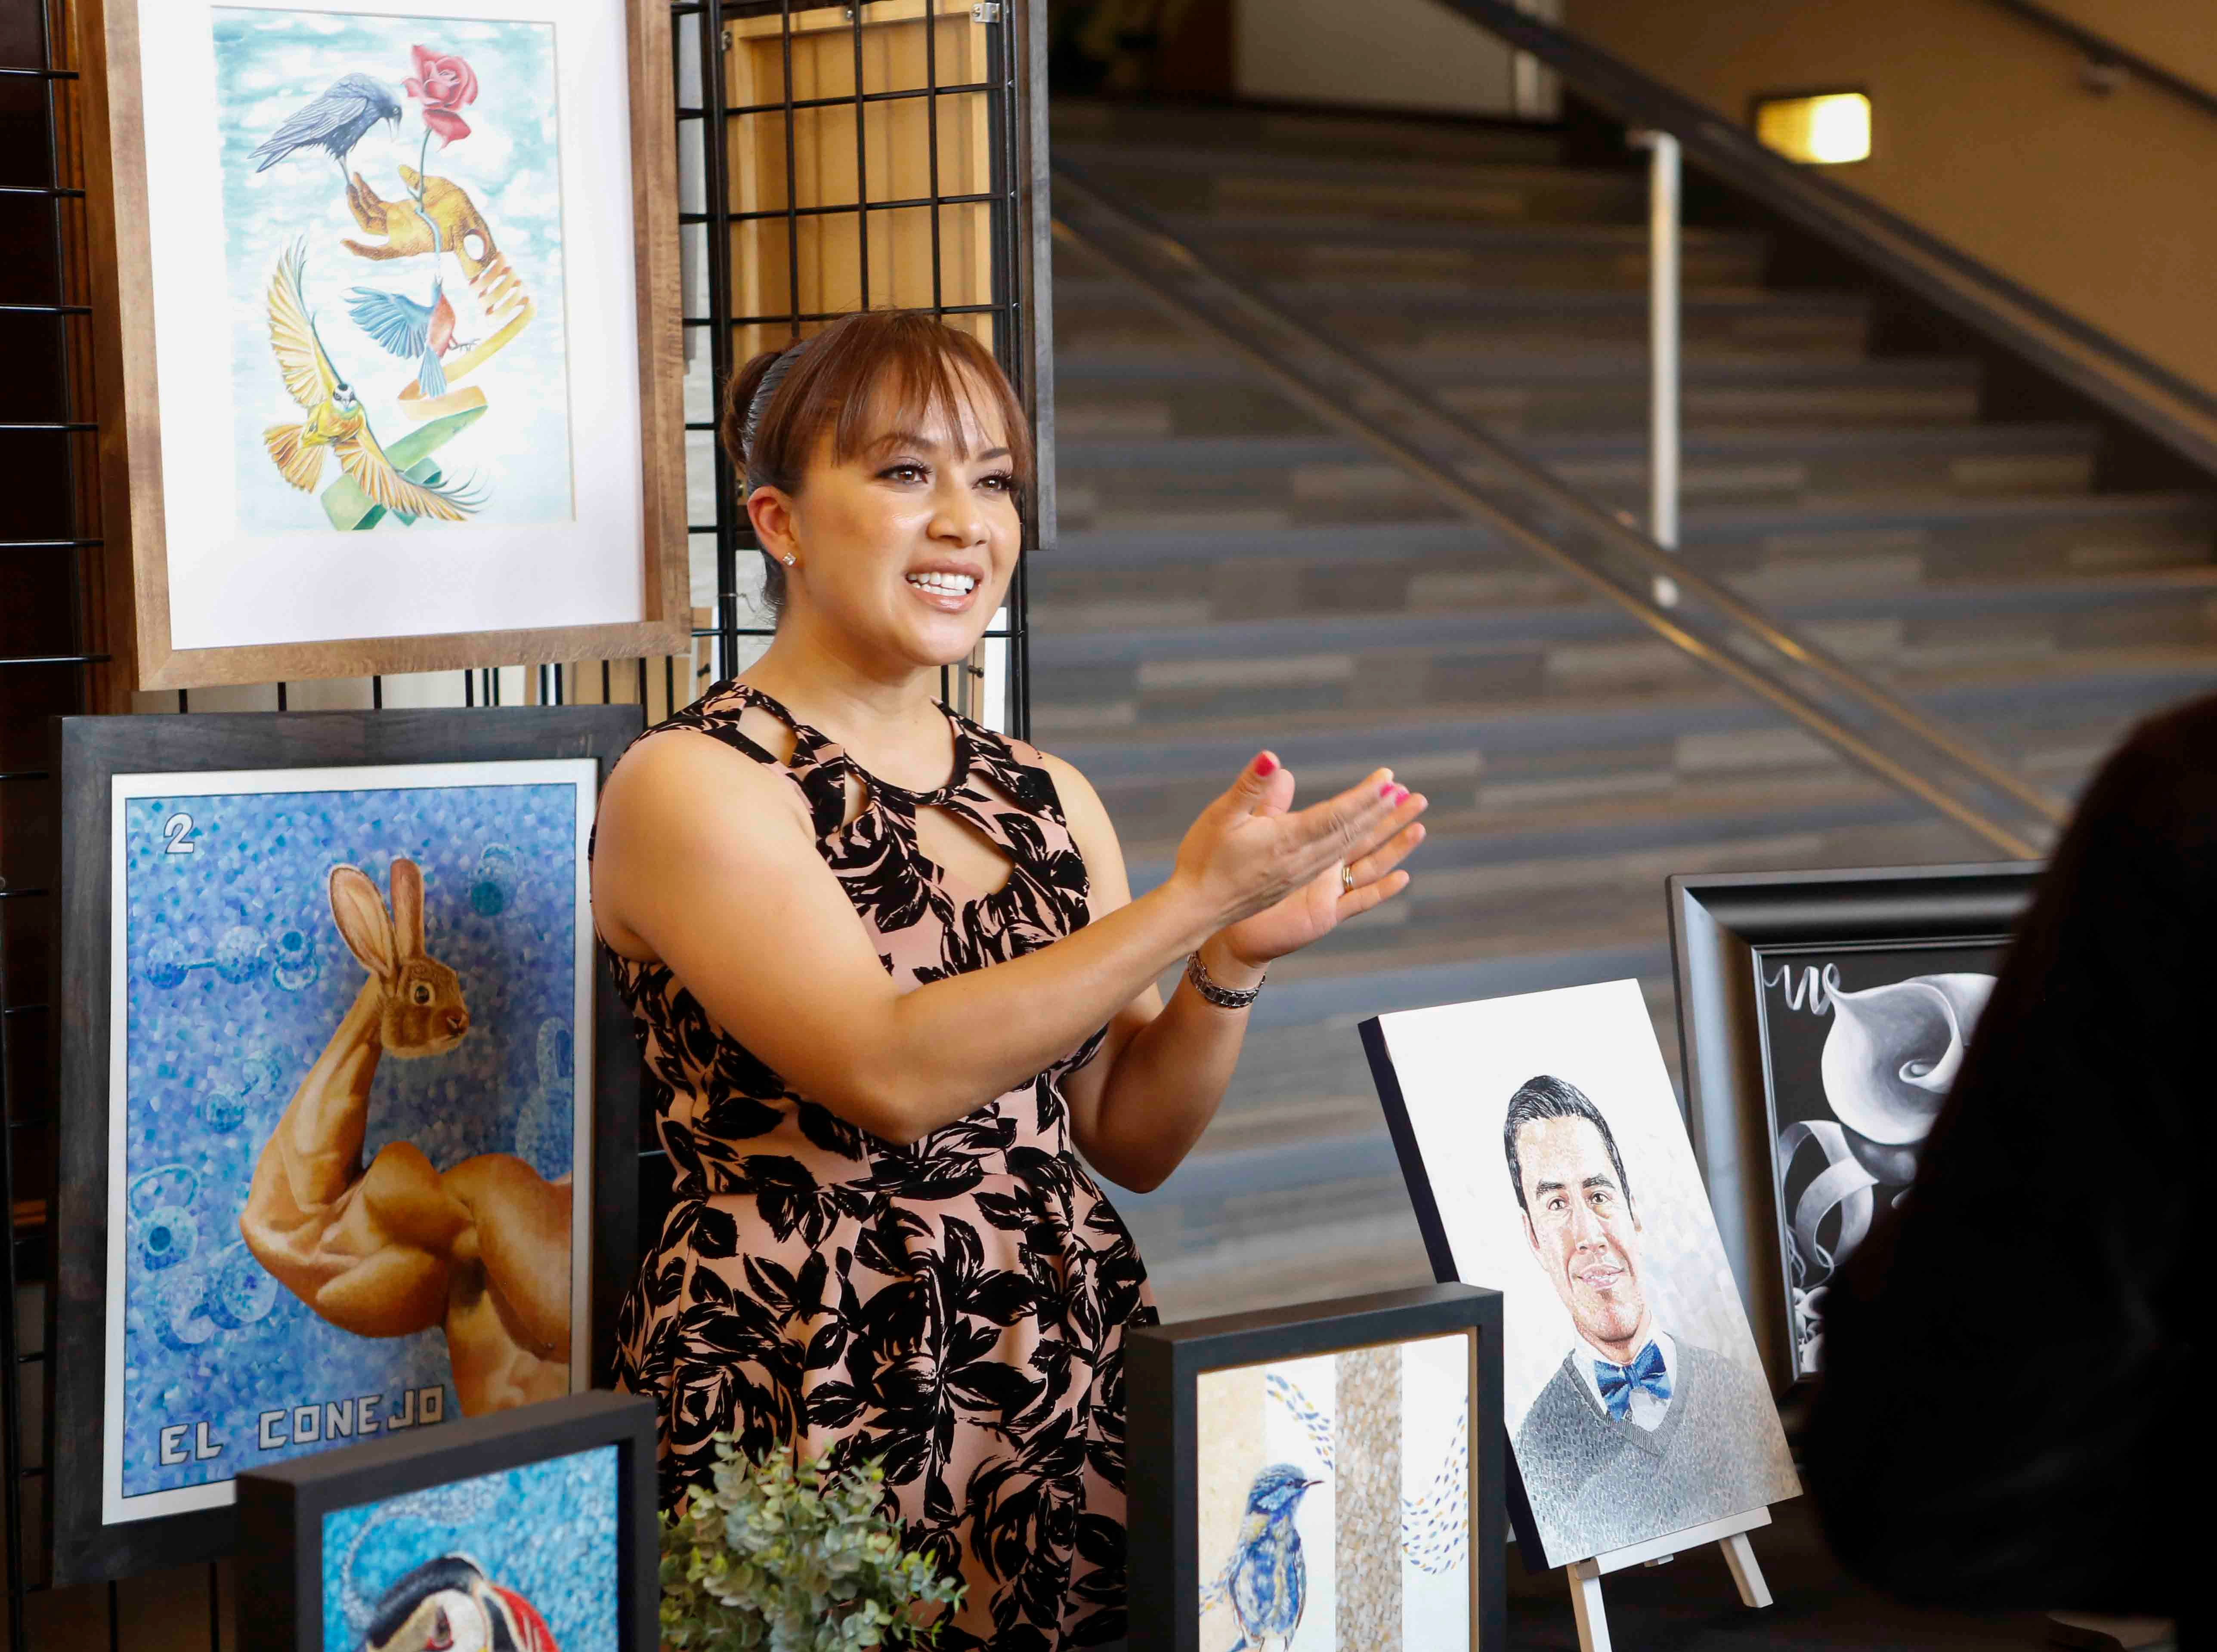 A visual artist talks about the work of Jesús Núñez on display during the 12th annual Noche Bohemia, a cultural event promoting dance, visual art, music and poetry at Sherwood Hall on Saturday, April 27, 2019 in Salinas, Calif.